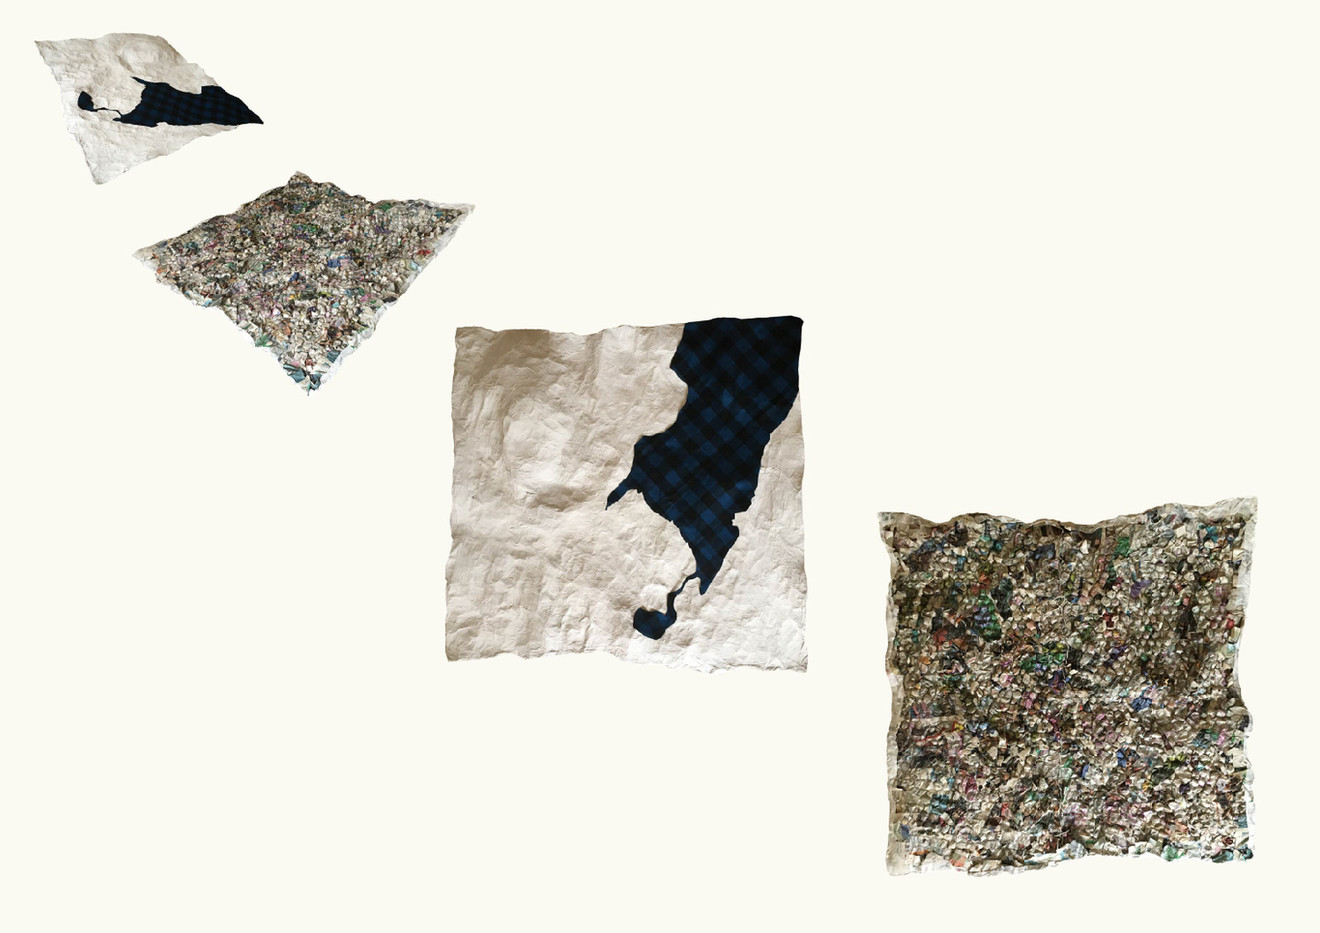 The Underneath: Experimental topography model, Cartographic Sculpture, 150x150cm, 2020